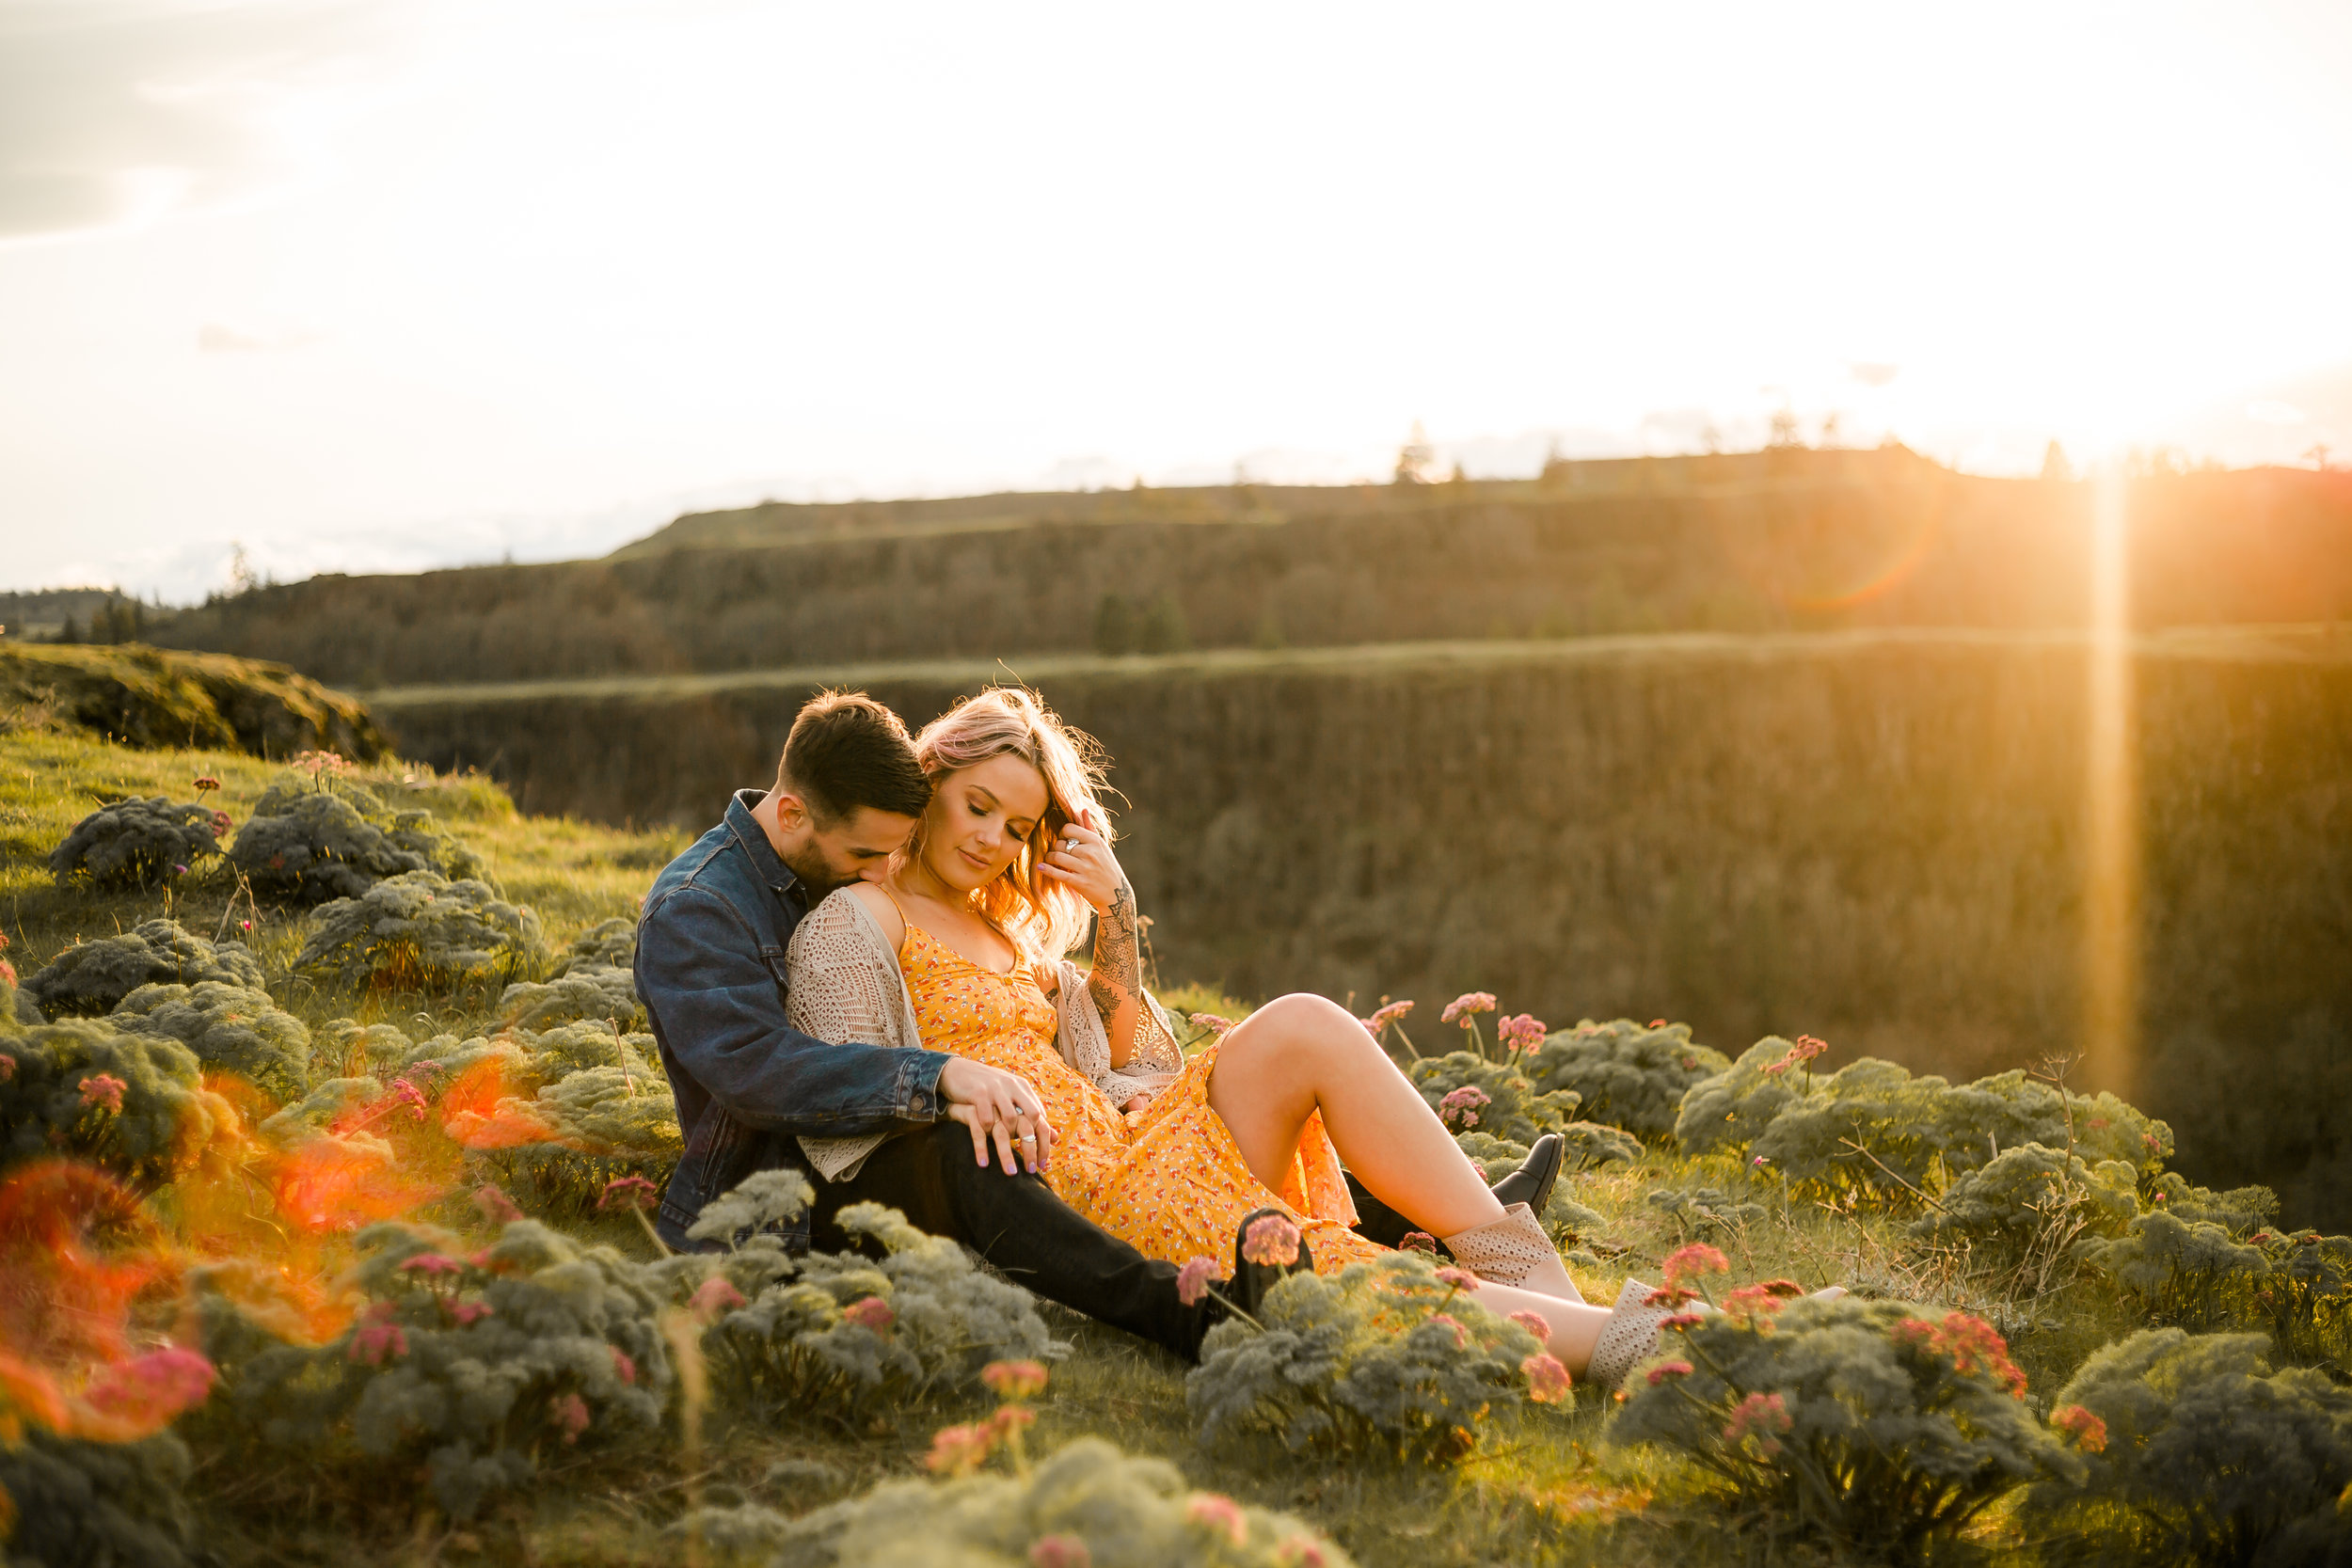 Brooklyn + Paul - Engagement in the Gorge